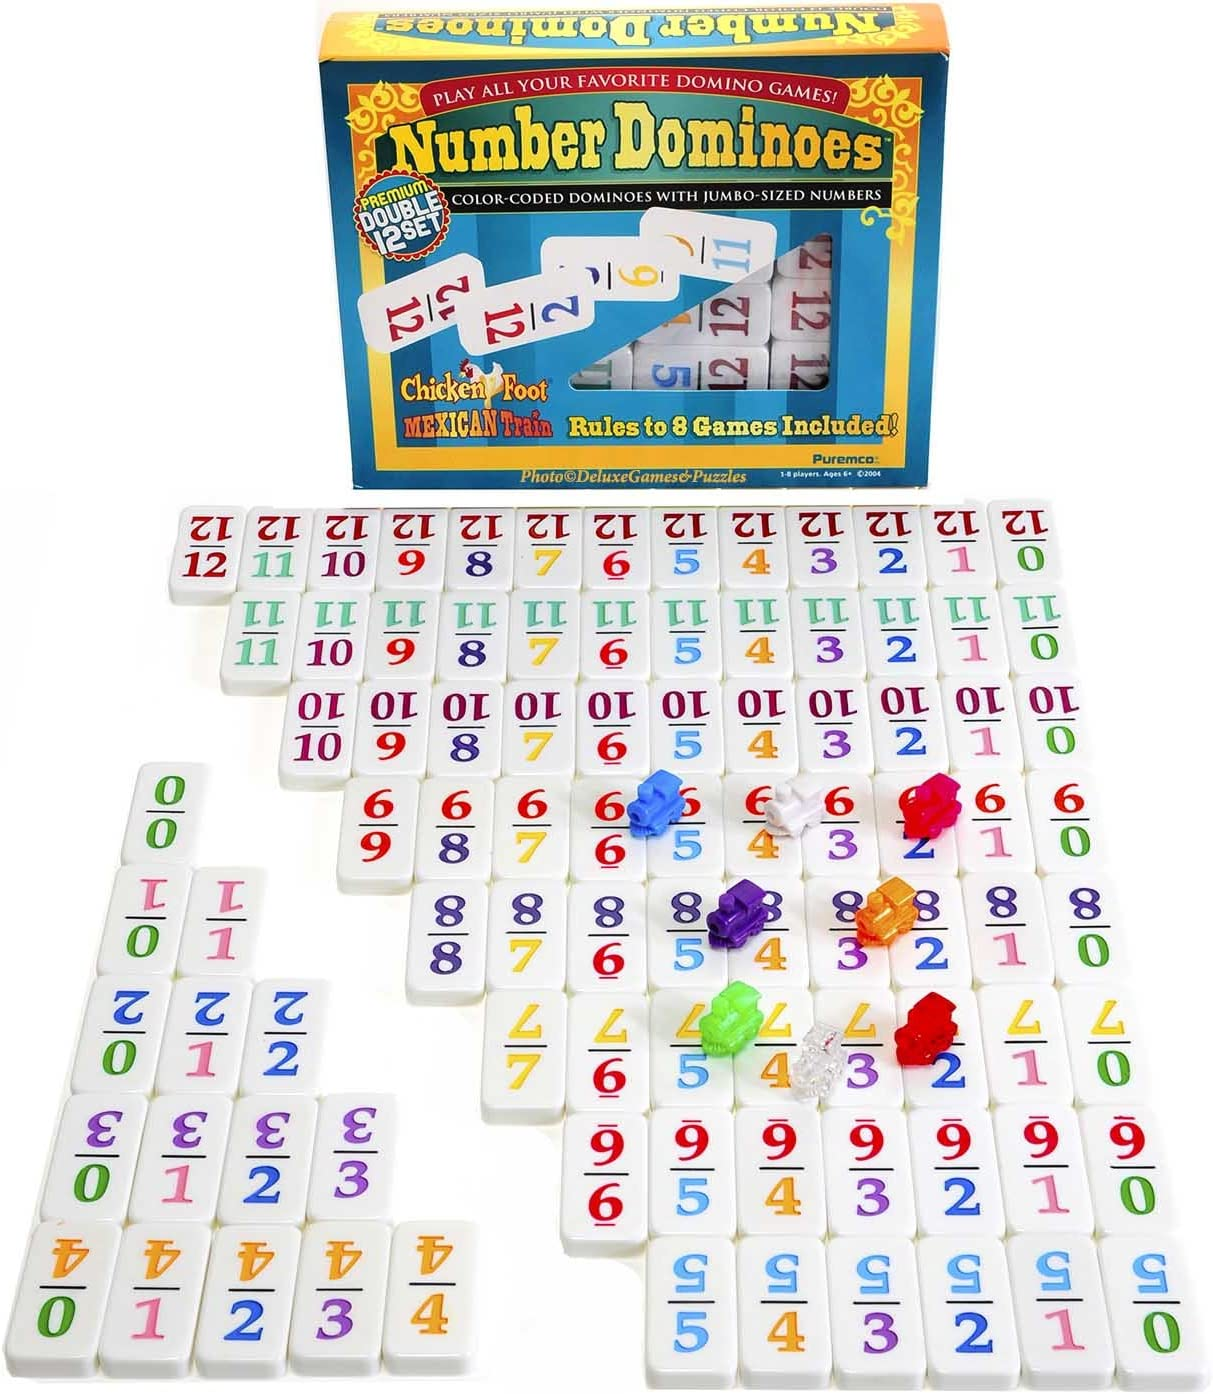 Dominoes Professional Mexican Train, Double 12 Set with Color-Coded Numbers